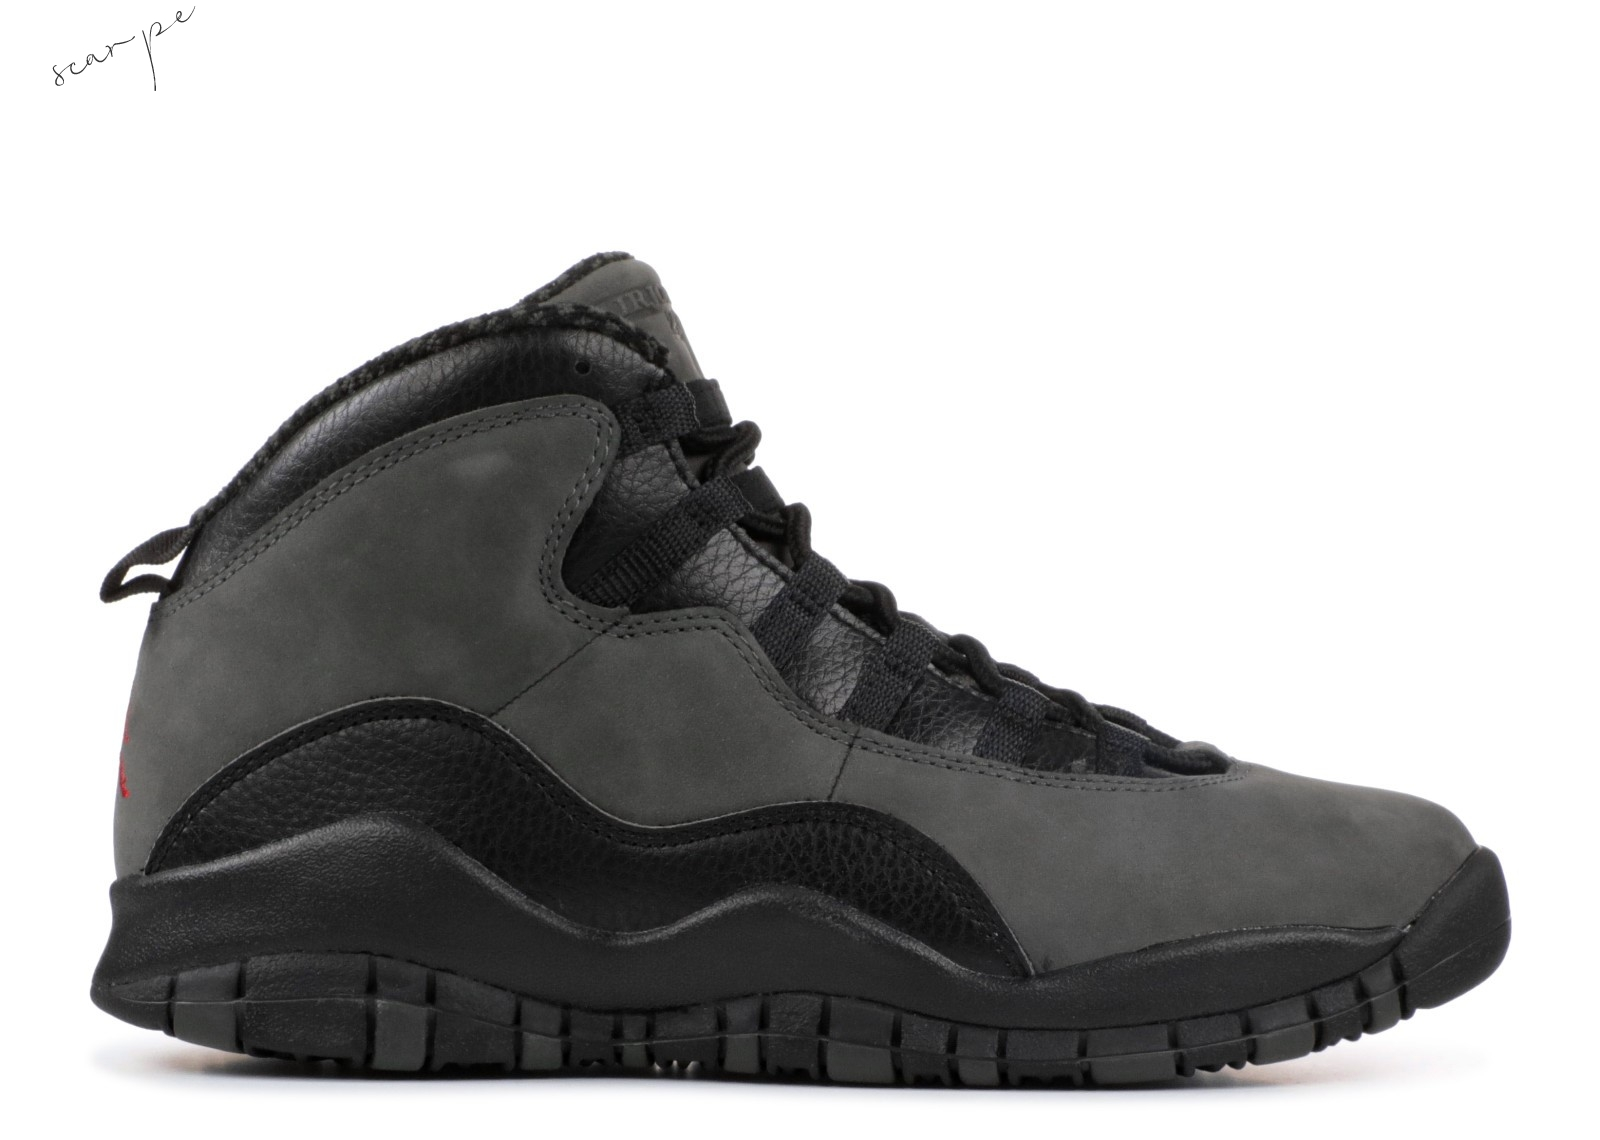 "Vendite Air Jordan 10 Retro Bg (Gs) ""Dark Shadow"" Gris Nero (310806-002) Scarpe Online"